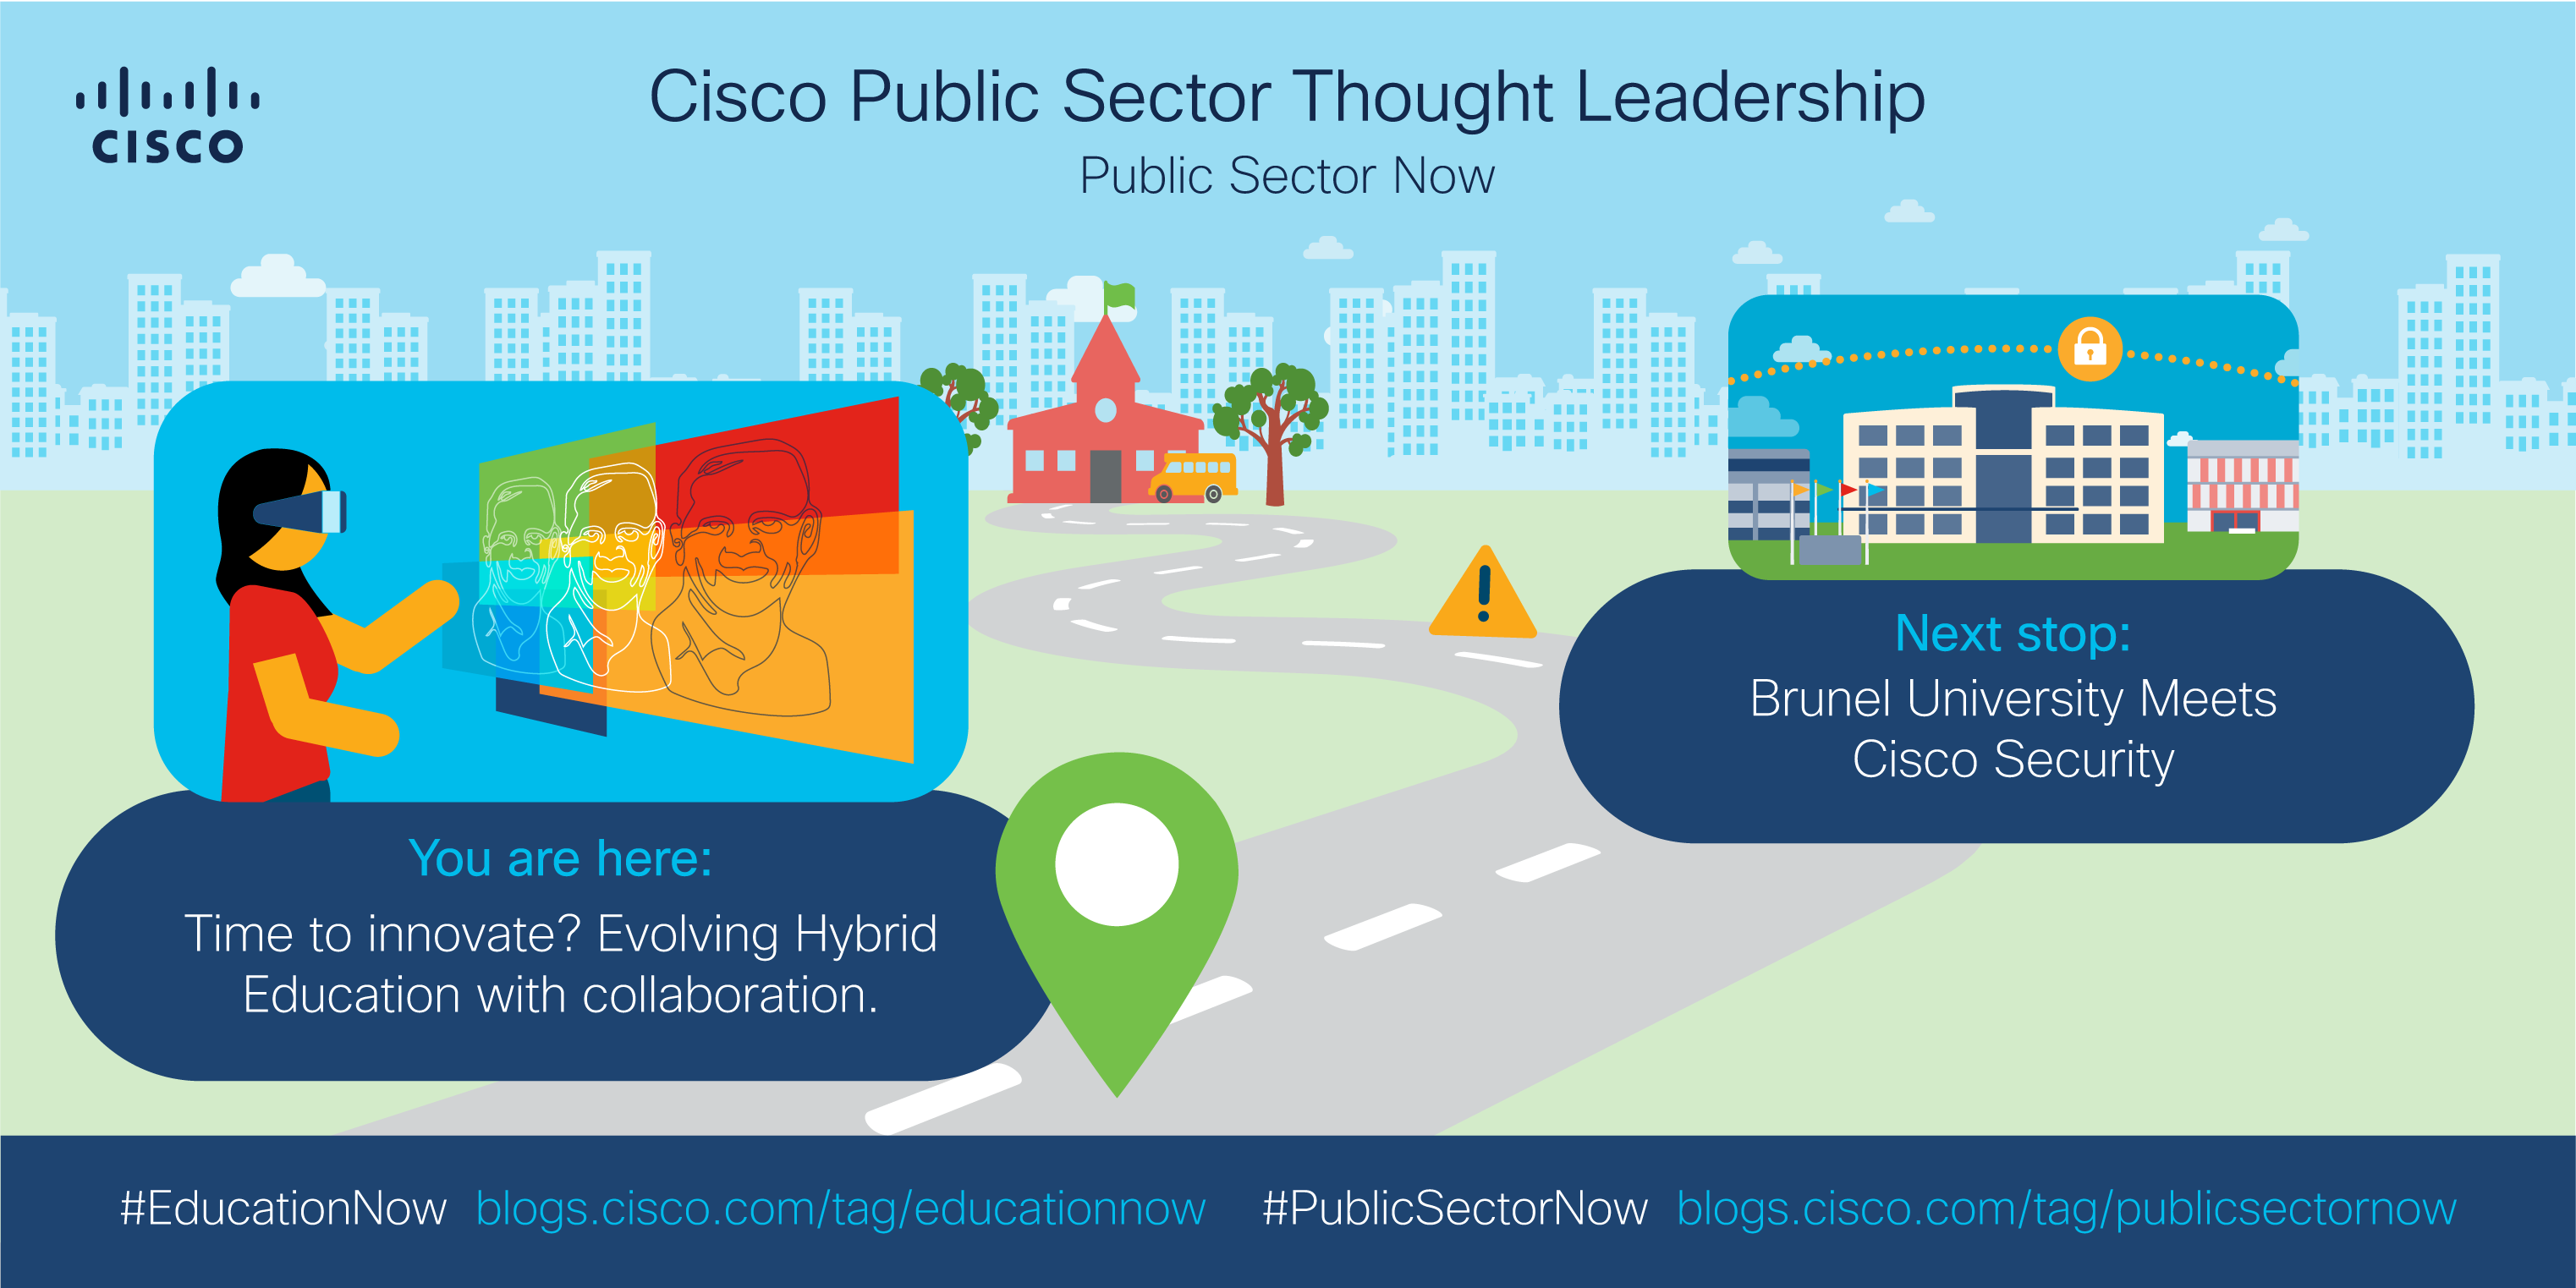 You are here: hybrid learning; Next stop: Brunel university meets Cisco Security